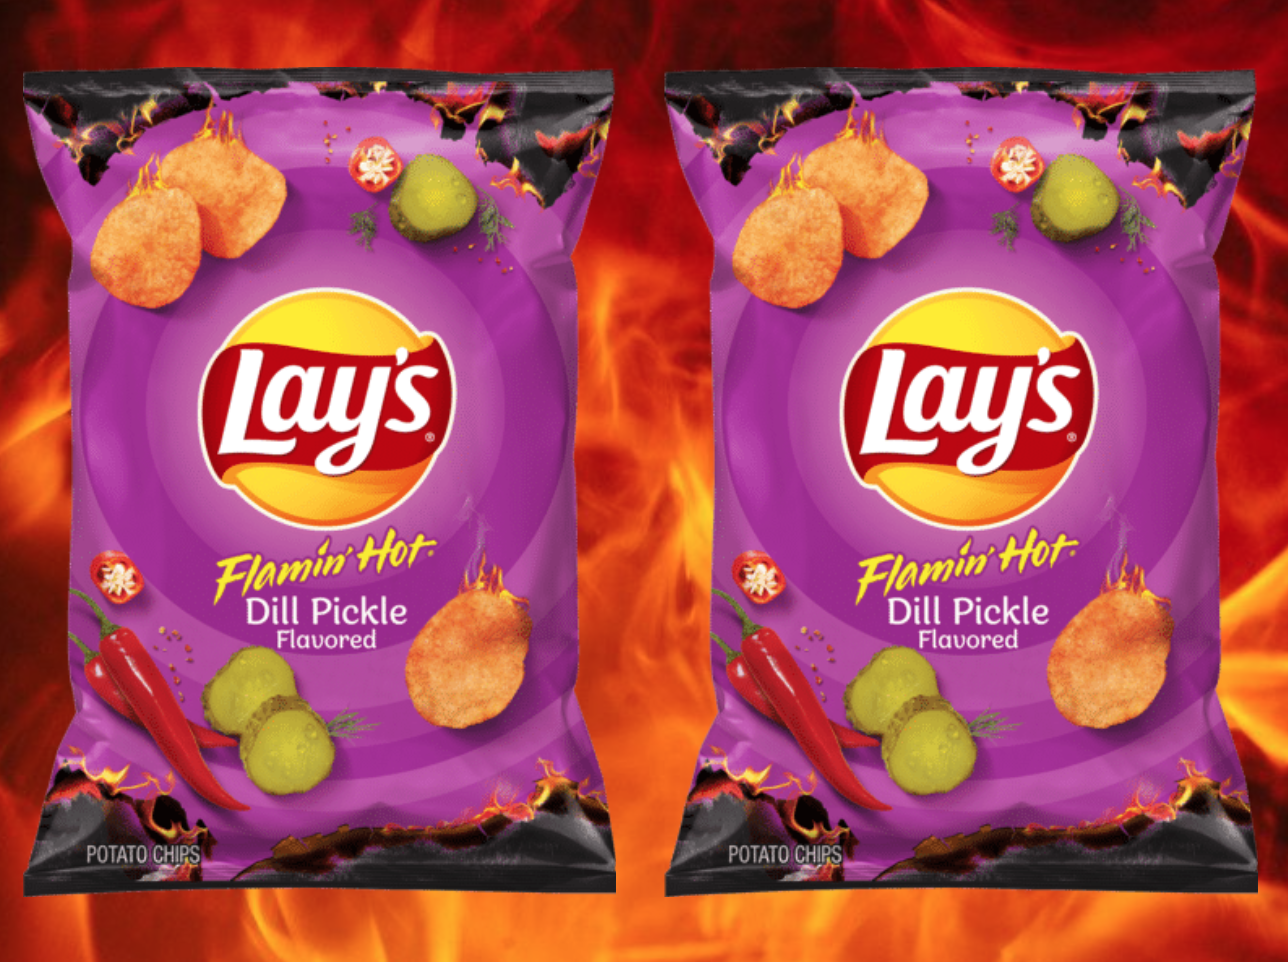 Flamin' Hot Dill Pickle